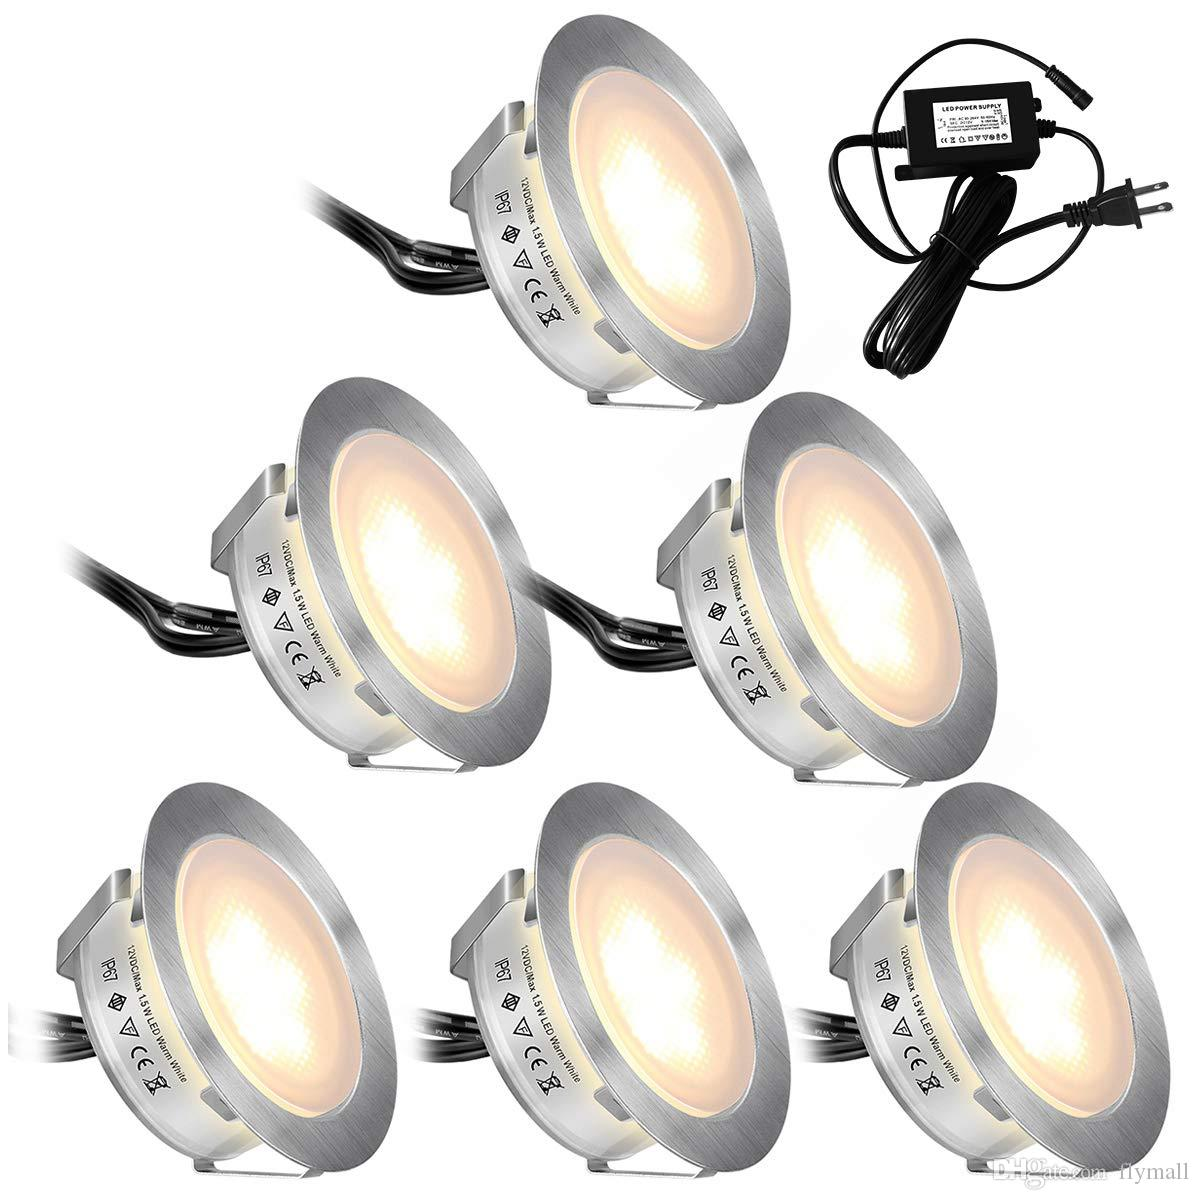 2020 Recessed Led Deck Lights Kits 6 Pack In Ground Outdoor Waterproof Ip67 Low Voltage Led Lights For Garden Yard Stair Patio Pool Deck From Flymall 28 28 Dhgate Com